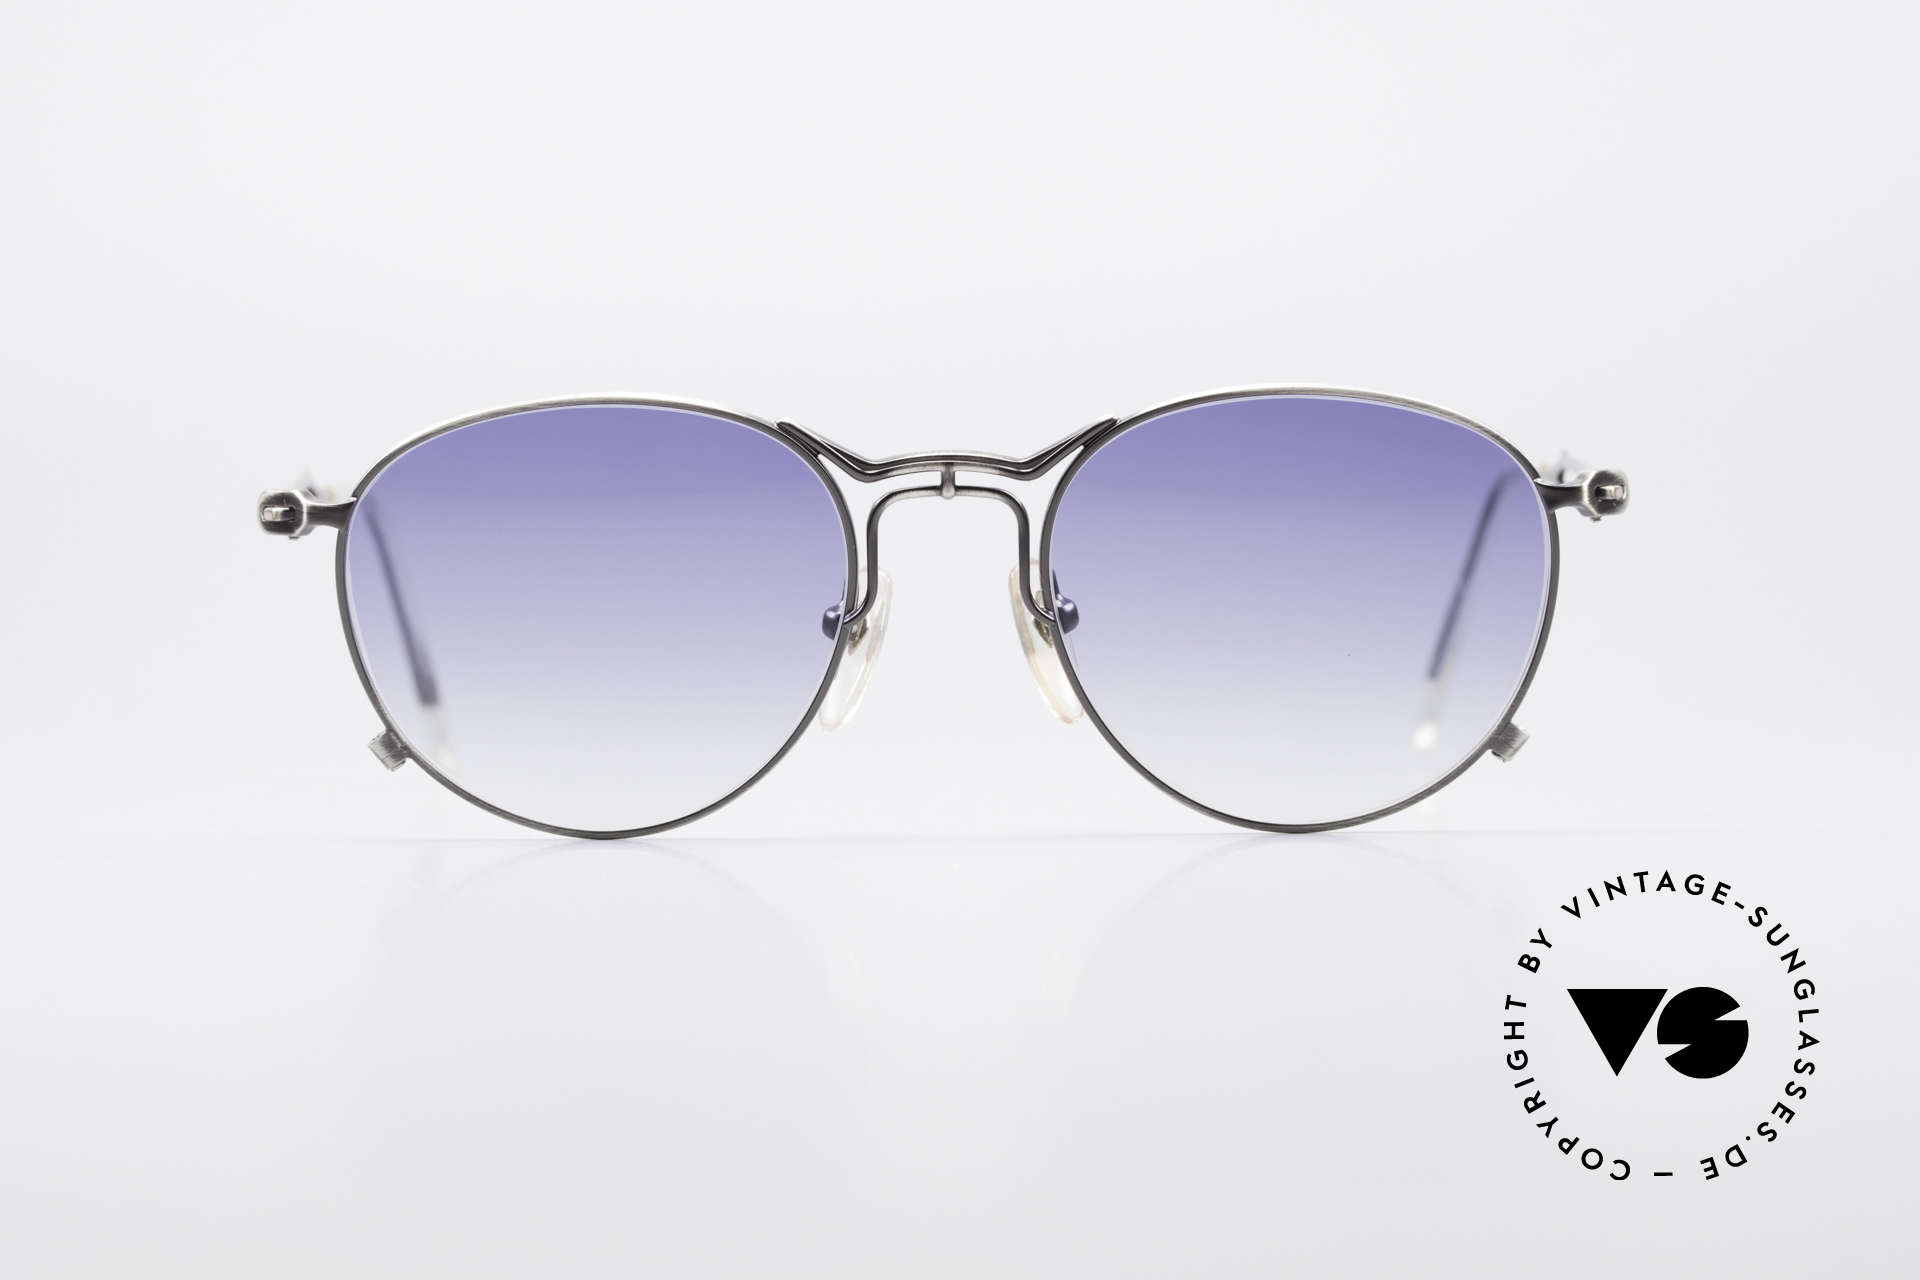 Jean Paul Gaultier 55-2177 Rare Designer Sunglasses, costly, unique frame finish: METALLIC SMOKE SILVER, Made for Men and Women